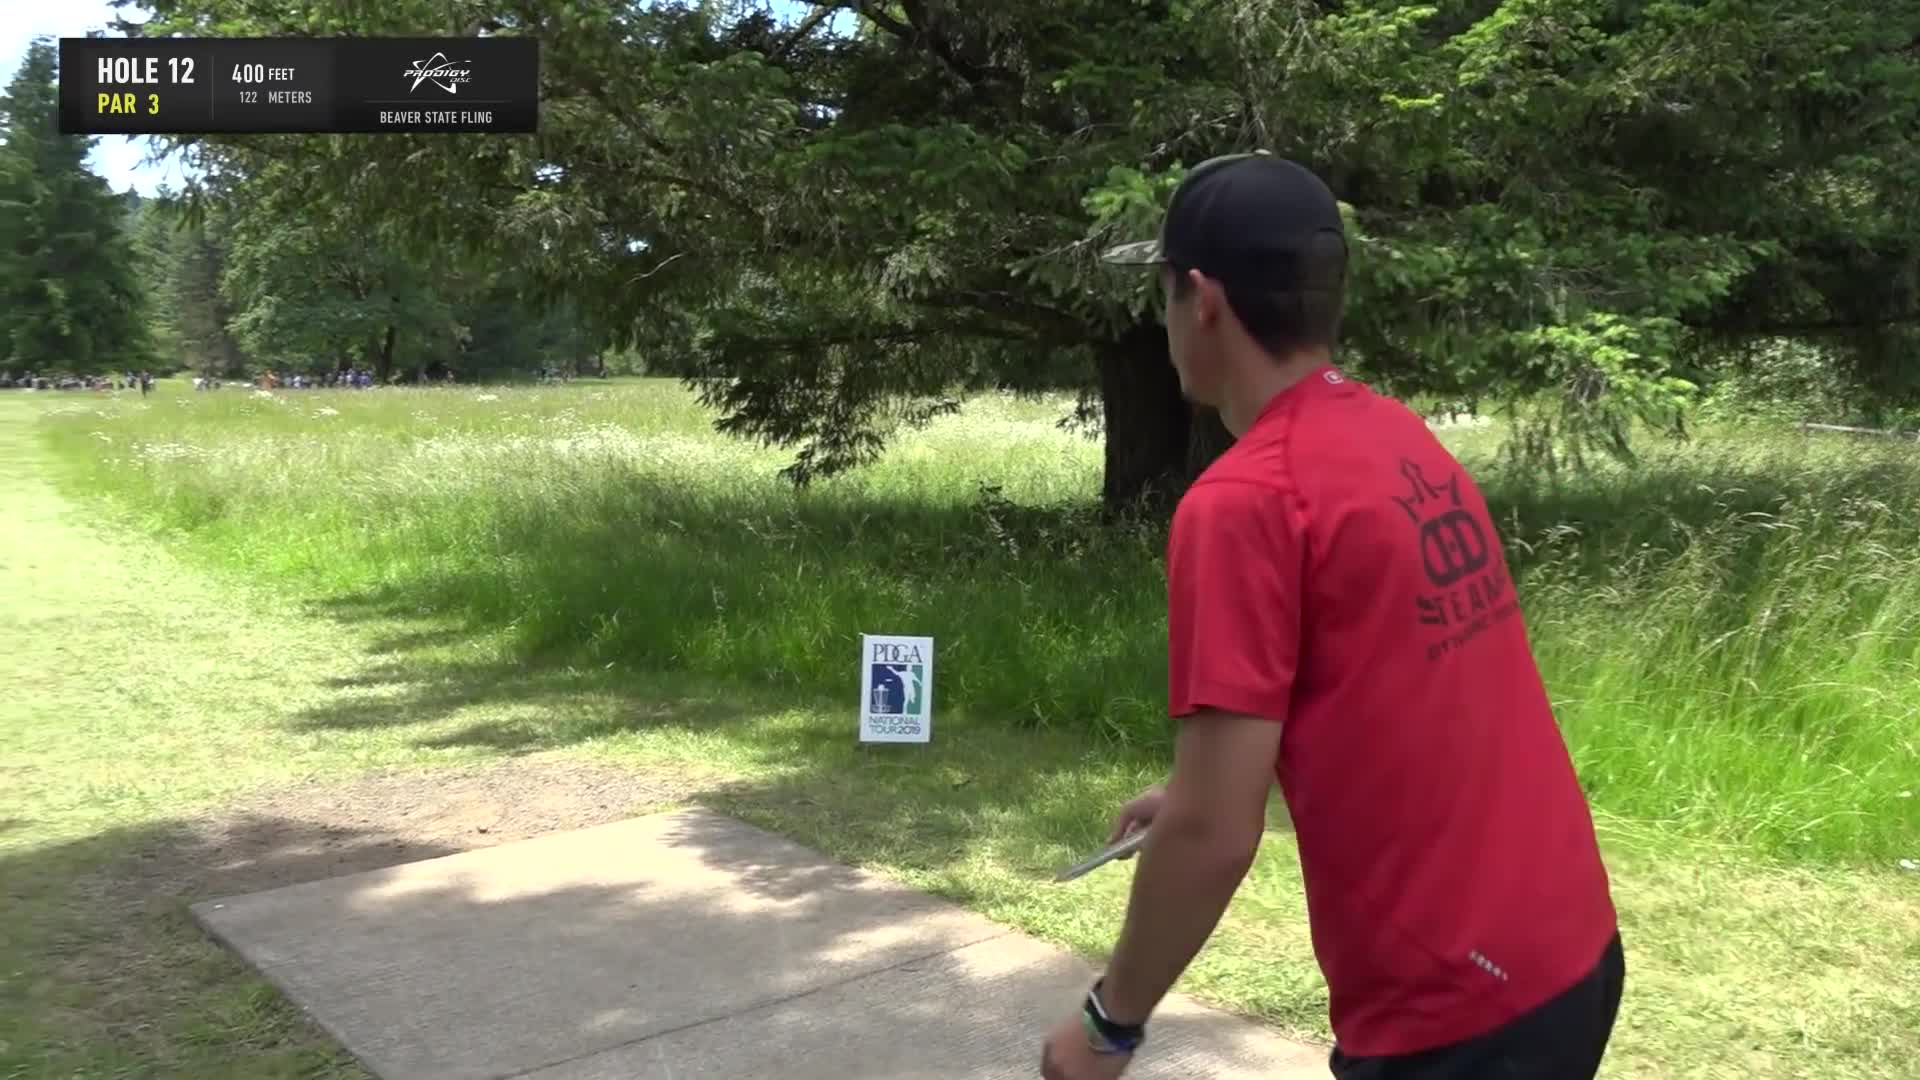 ace, bsf, dela, delaveaga, dgpt, dgwt, disc, disc golf, frolf, hole in one, masters cup, mcbeast, milo, nate sexton, nt, paul mcbeth, pdga, simon lizotte, tournament, worlds, 2019 Beaver State Fling - Final Round, Part 2 - AJ Risley hole 12 drive in tree GIFs